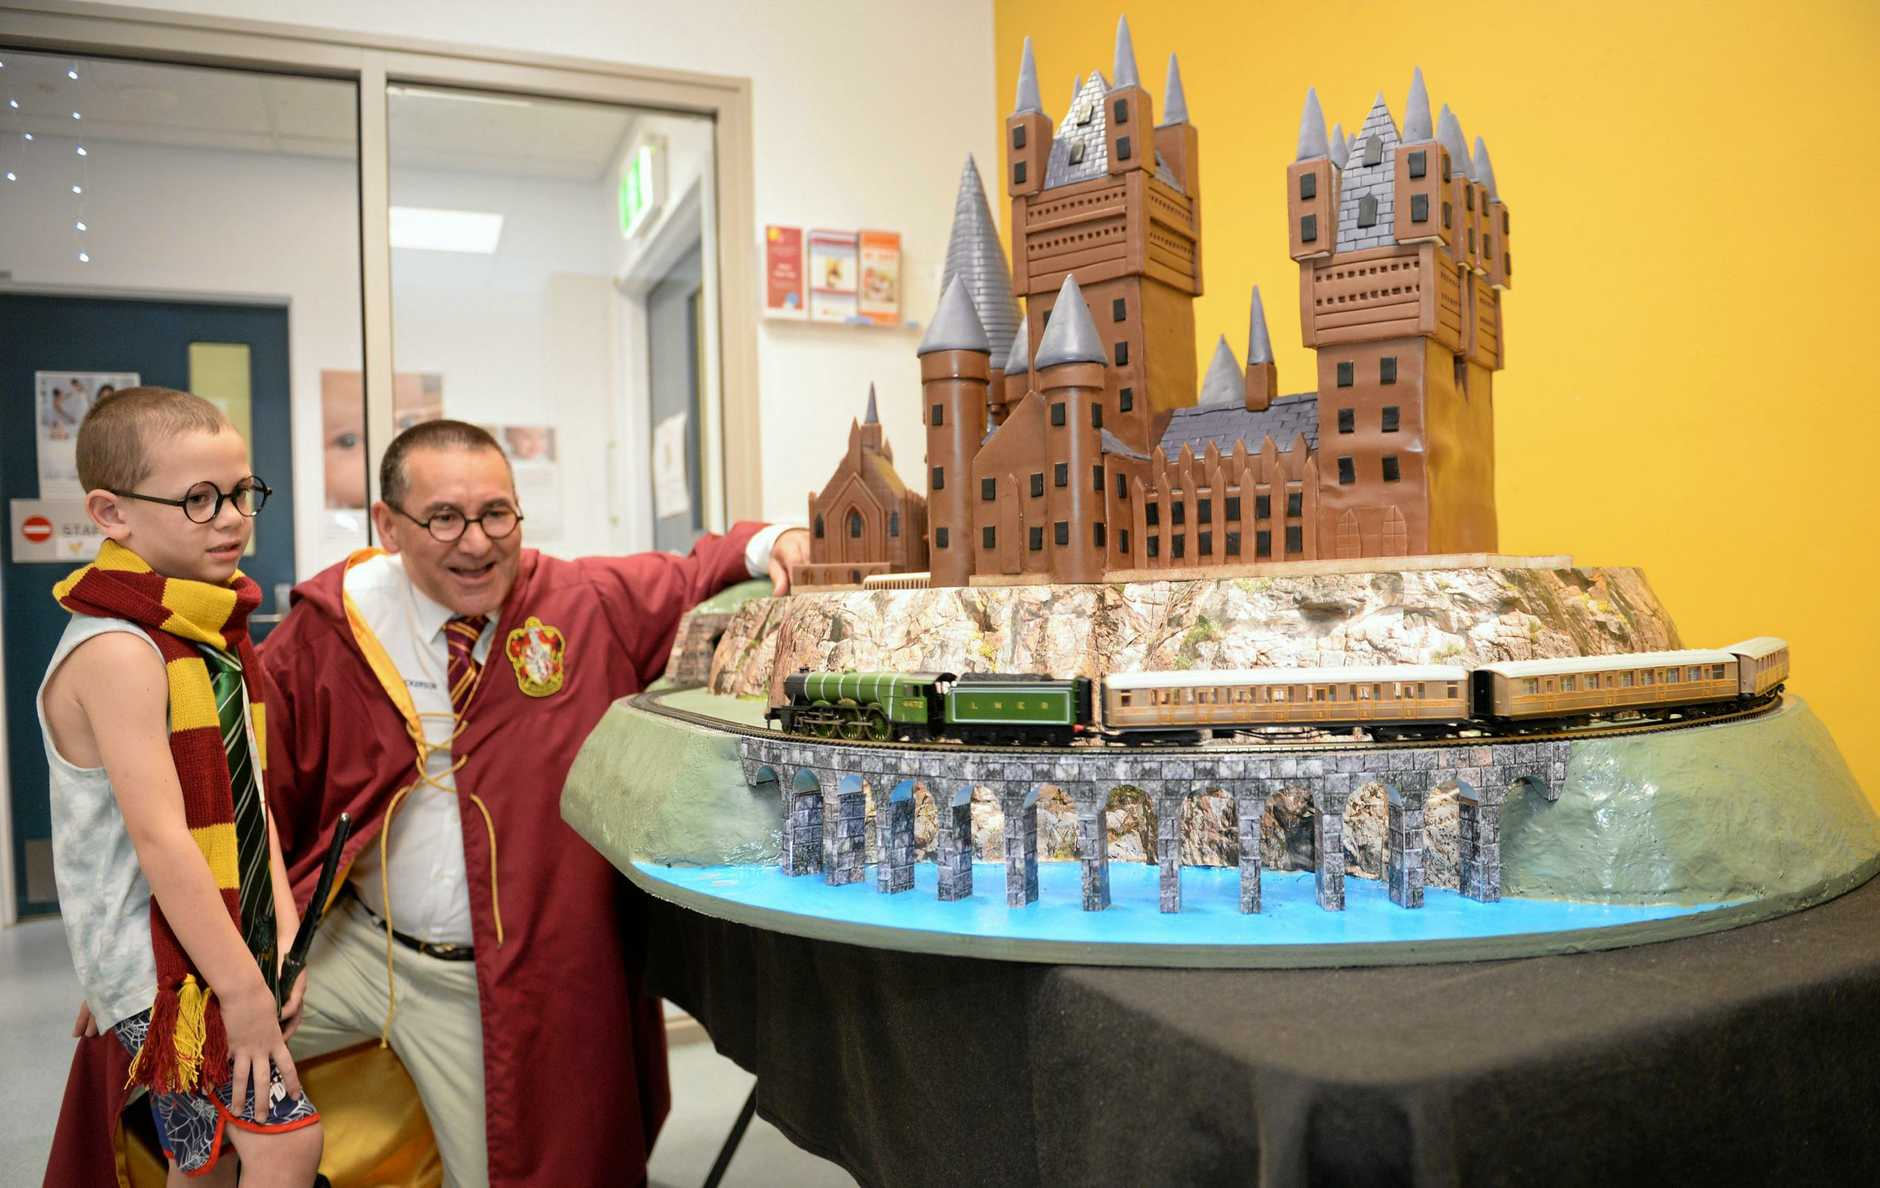 Drew Wickerson and Ja' Tarhmei Anderson with the Hogwarts cakes to Children's Ward at Rockhampton Hospital.